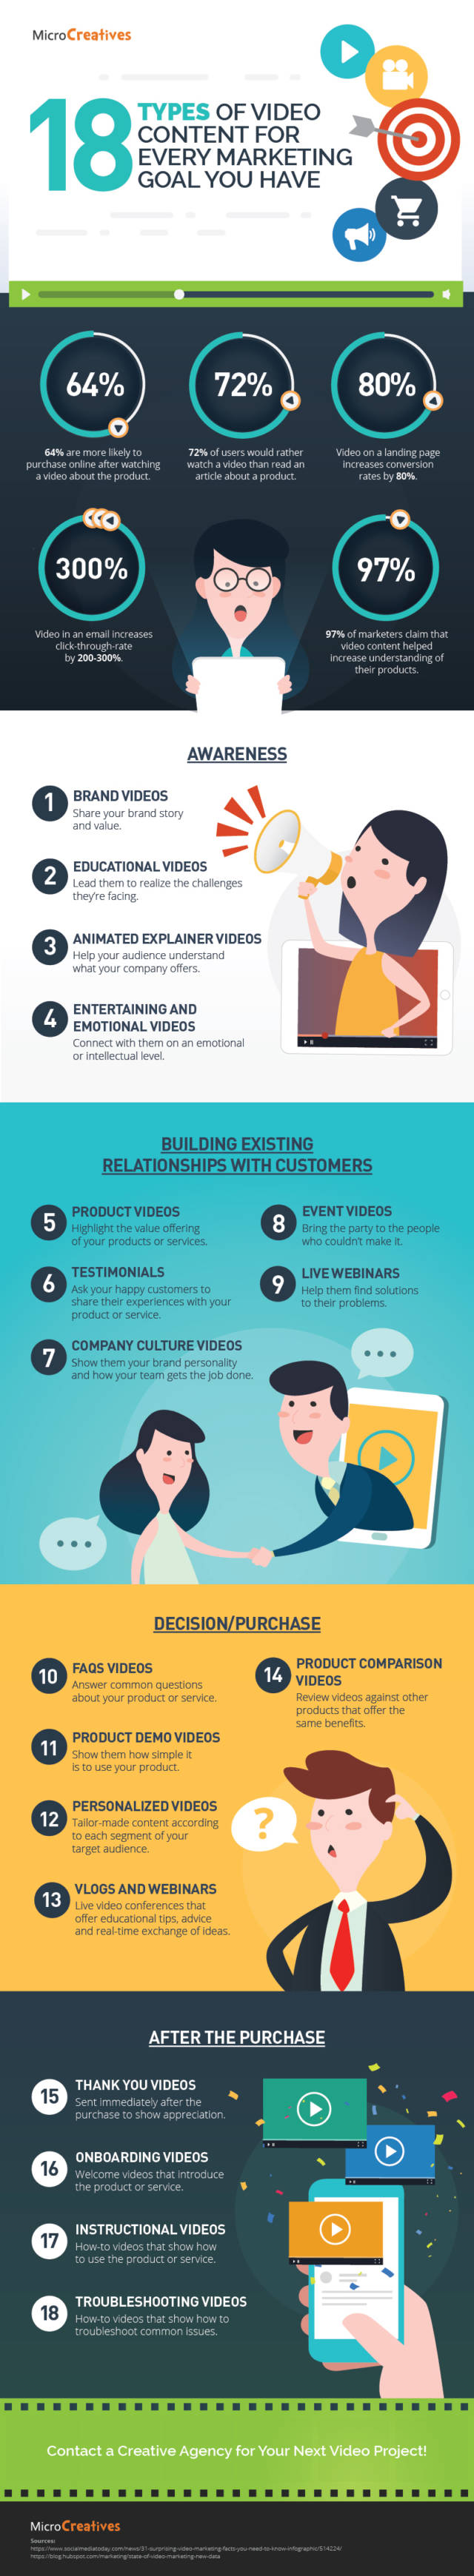 18 Kinds of Video Content and How to Use Them [Infographic]